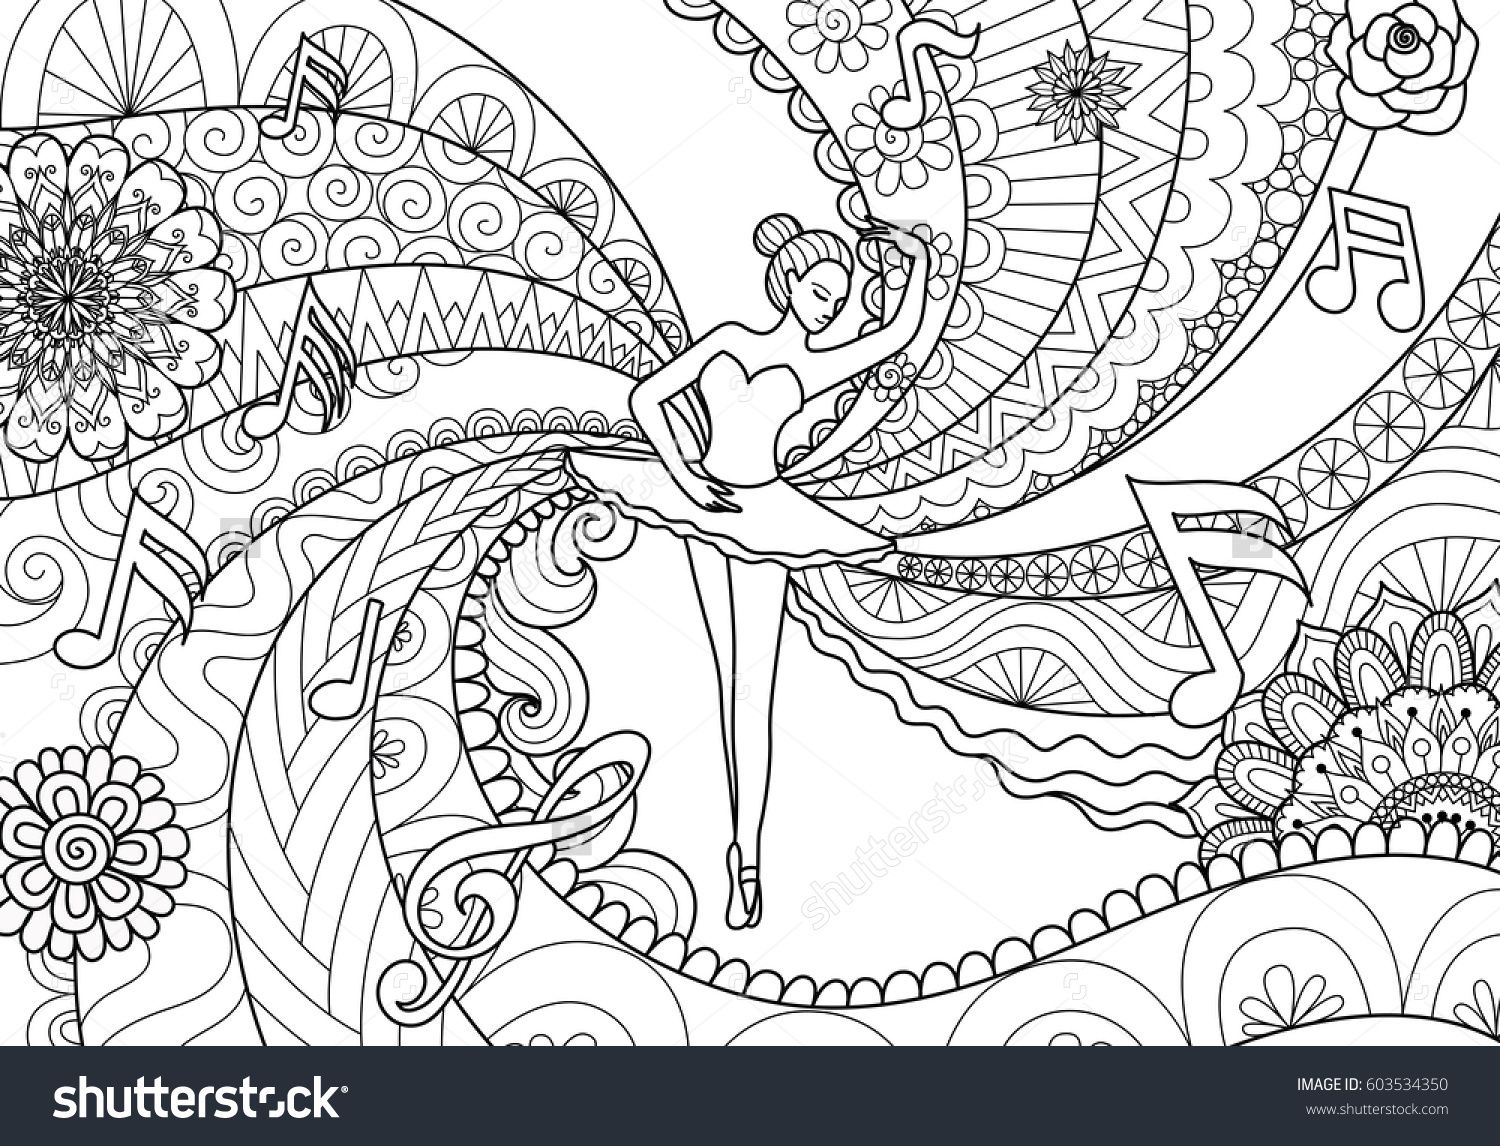 zendoodle design of ballet dancer for coloring book pages